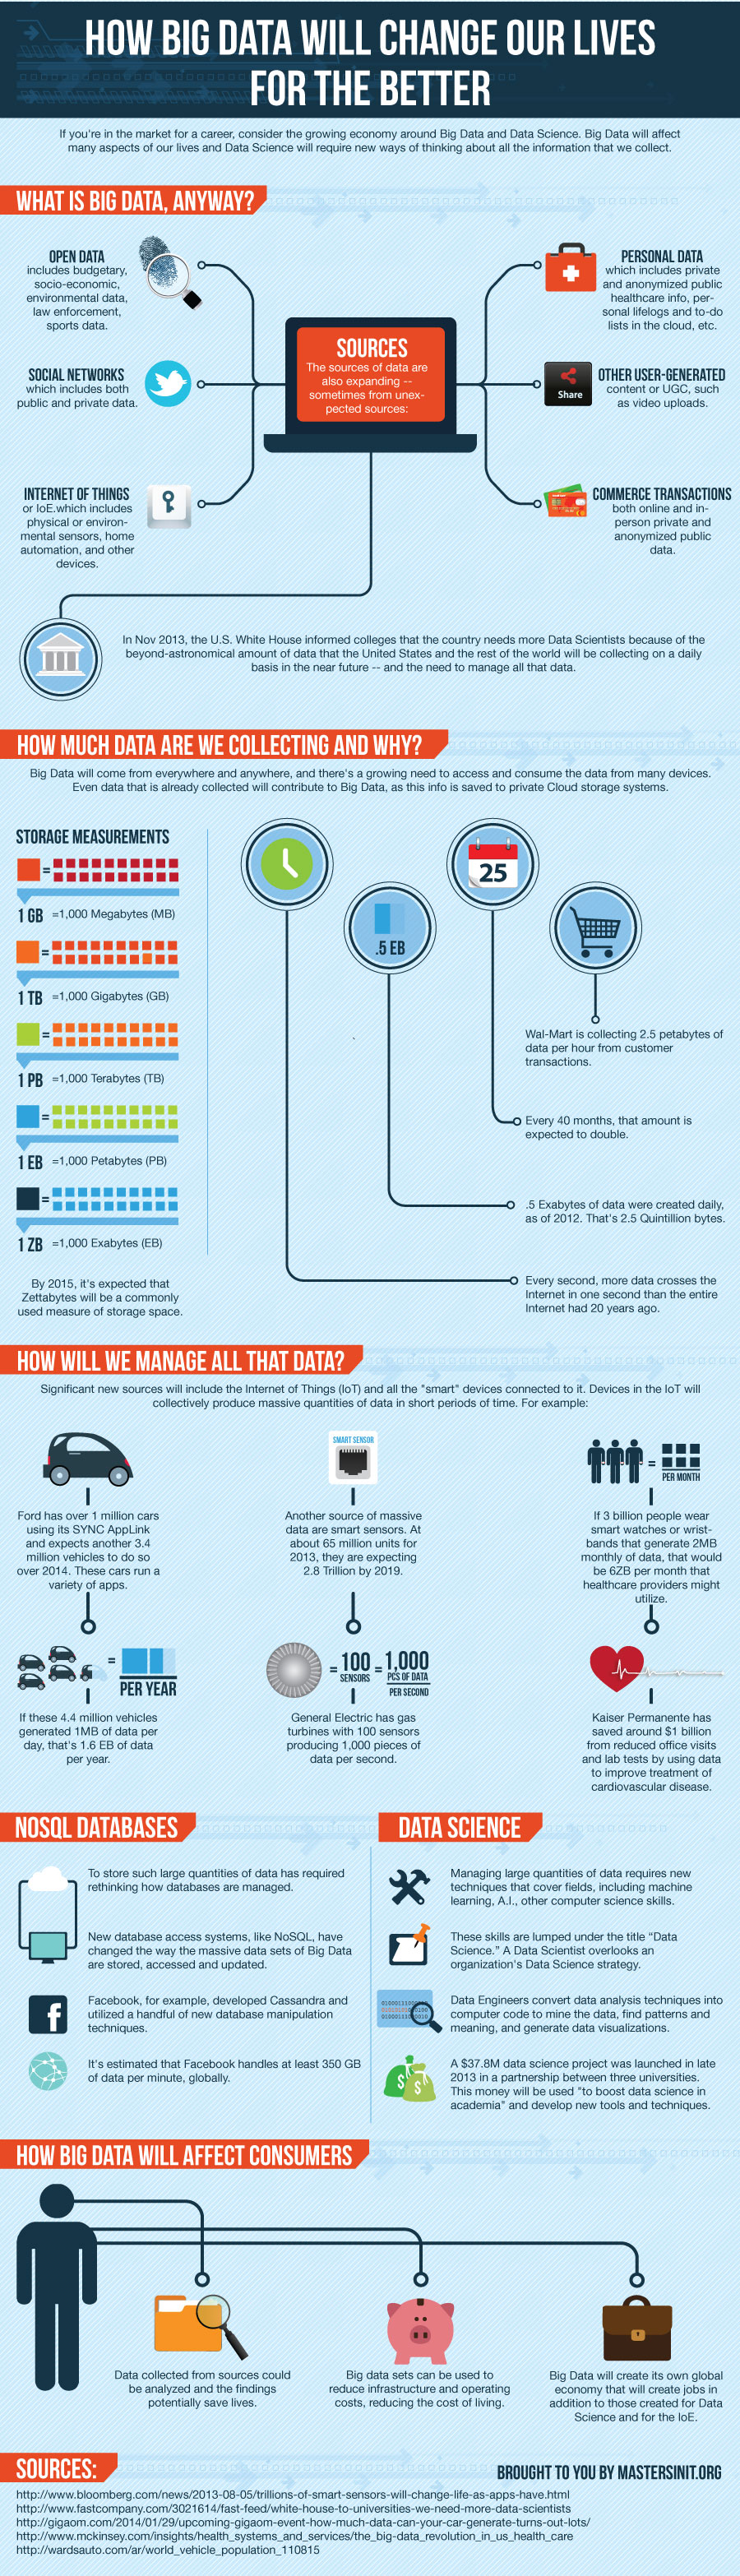 how-big-data-will-change-our-lives-for-the-better-infographic